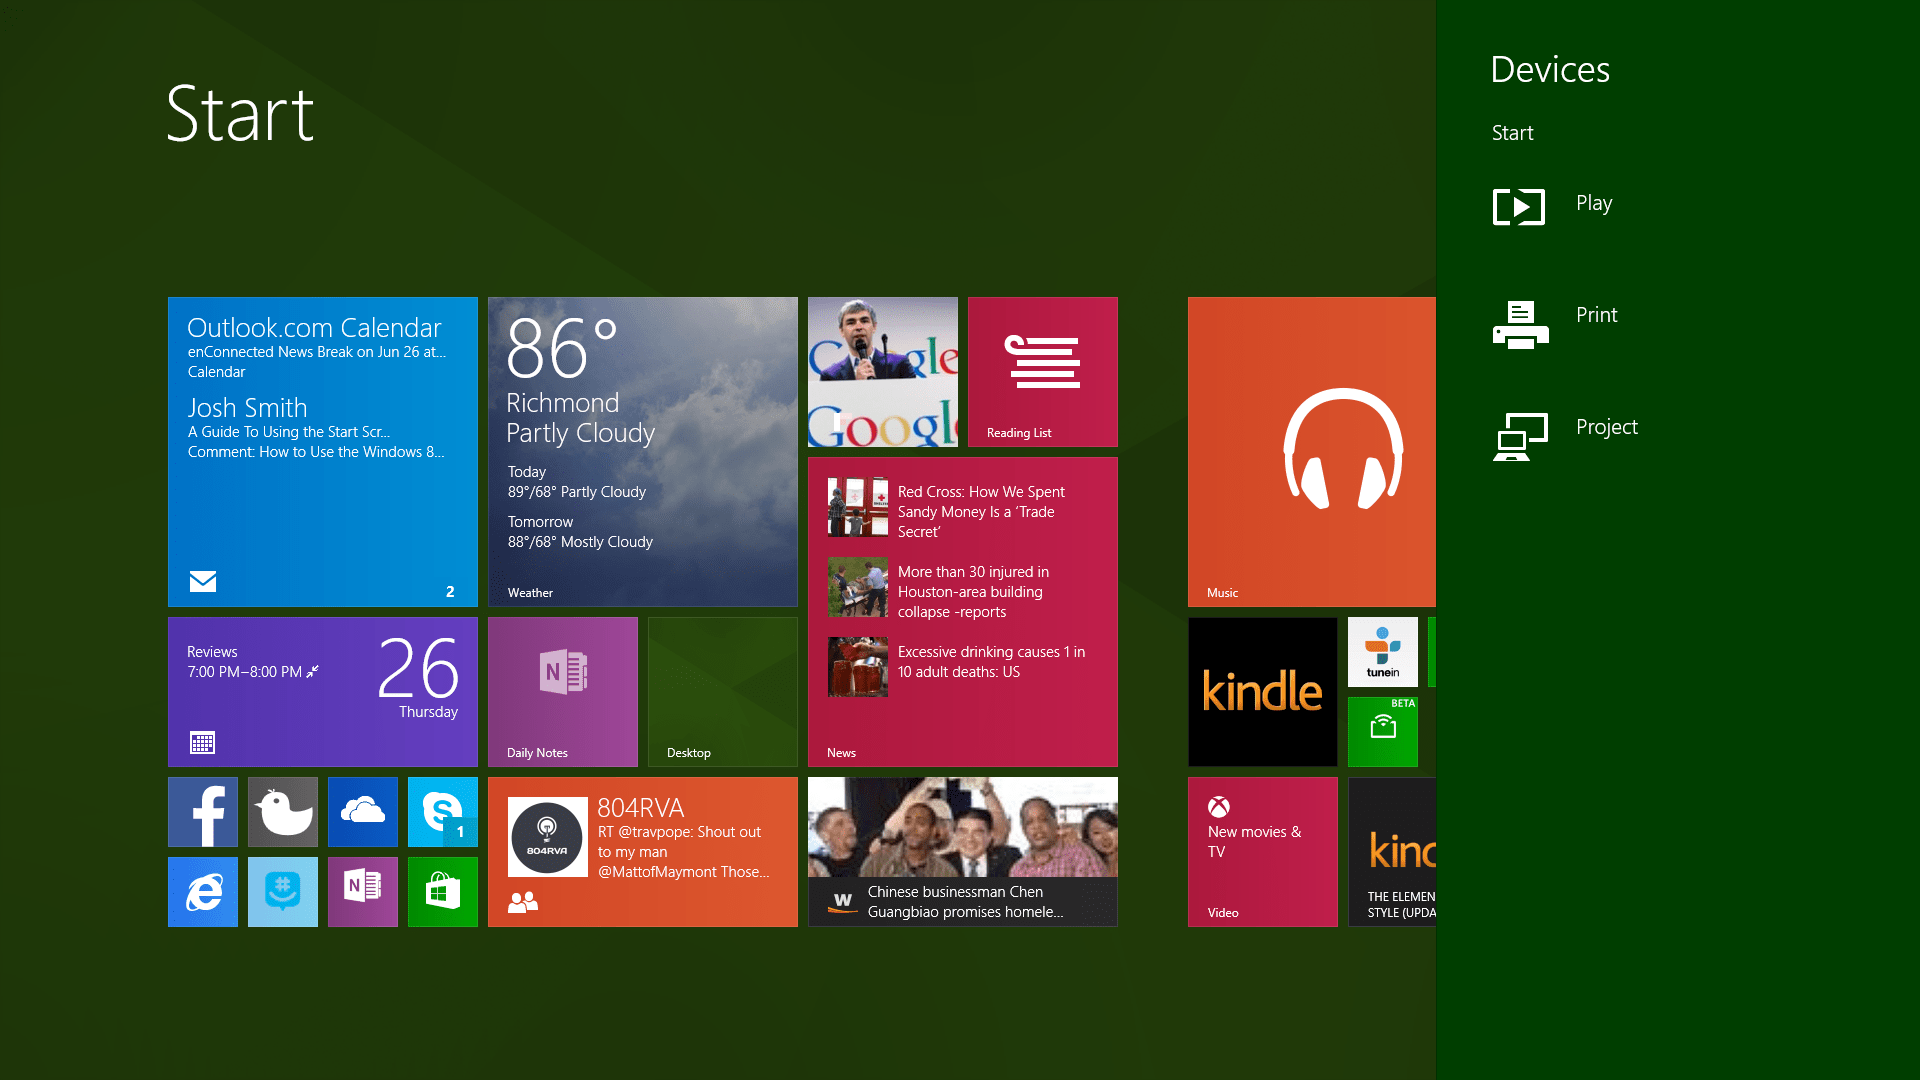 Guide to the Windows 8 Start Screen With a Mouse and Keyboard